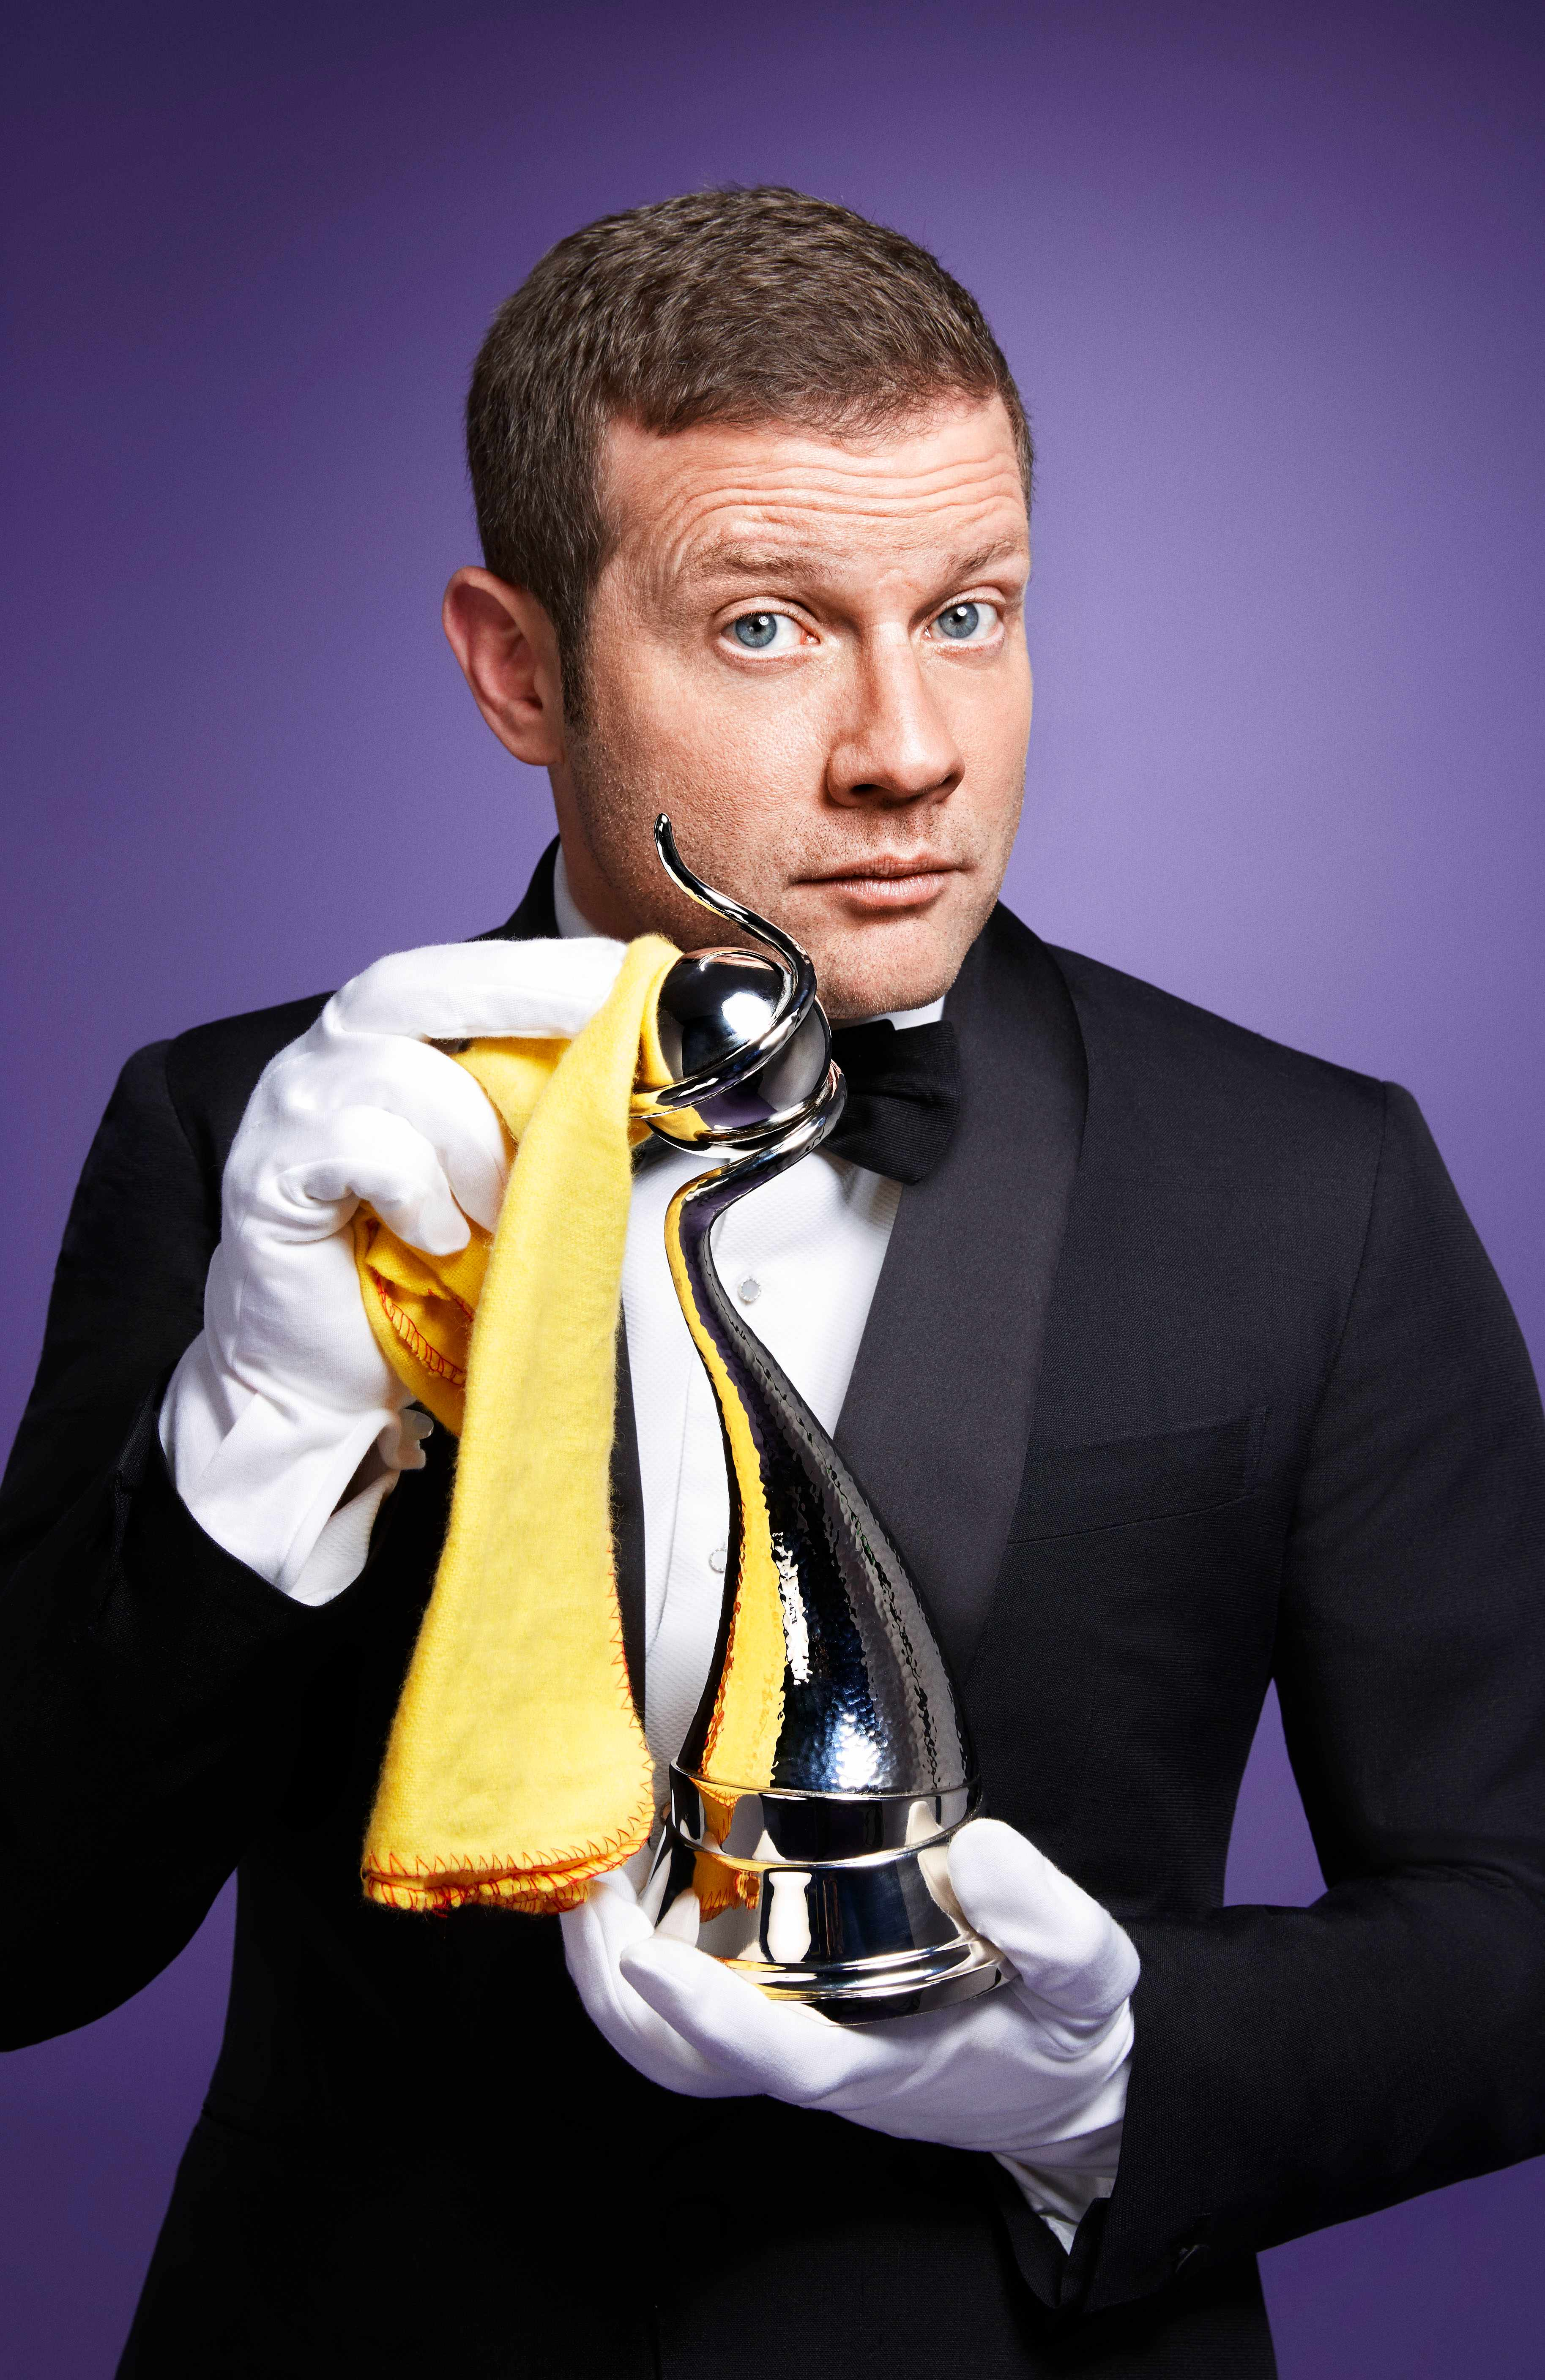 From Indigo Productions   THE 23RD NATIONAL TELEVISION AWARDS  Tuesday 23rd January 2018, 7.30pm, ITV  Pictured: Host Dermot O'Leary with one of the coveted National TV Awards   Broadcast live from The O2 London, the NTAs celebrate television's best-loved shows and stars in the only TV awards ceremony where the winners are chosen entirely by the British public!    This year sees a brand new category, Crime Drama. Recognising a year when primetime mysteries became our favourite TV genre, this award pits Line of Duty against Broadchurch, Little Boy Blue and Sherlock.  Armchair detectives – make your voices heard!   The NTAs are paying tribute to the late, great Sir Bruce Forsyth by naming a major prize after him.  Ant & Dec's Saturday Night Takeaway, The Graham Norton Show, Celebrity Juice and All Round to Mrs Brown's have the honour of battling it out for the inaugural Bruce Forsyth Entertainment Award.  It's also a clash of the acting titans for Drama Performance, with Taboo star Tom Hardy and Broadchurch's leading man David Tennant tackling a triumvirate of our top TV actresses in Sheridan Smith, Jenna Coleman and Suranne Jones.  Can reigning champions Ant & Dec make it a jaw-dropping 17-year winning streak and retain their TV Presenter title?  Stiff competition comes from ITV colleagues Phillip Schofield and Holly Willoughby.  But will fellow nominee Bradley Walsh win the chase before he takes a trip in the Tardis in the next series of Doctor Who?  © ITV/Indigo Television  Photographer: Simon Webb   For further information please contact Peter Gray 0207 157 3046 peter.gray@itv.com    This photograph is © ITV/Indigo Television and can only be reproduced for editorial purposes directly in connection with the  programme The National TV Awards or ITV. Once made available by the ITV Picture Desk, this photograph can be reproduced once only up until the Transmission date and no reproduction fee will be charged. Any subsequent usage may incur a fee. This photograph must not be syndicated to any other pub  ITV, TL